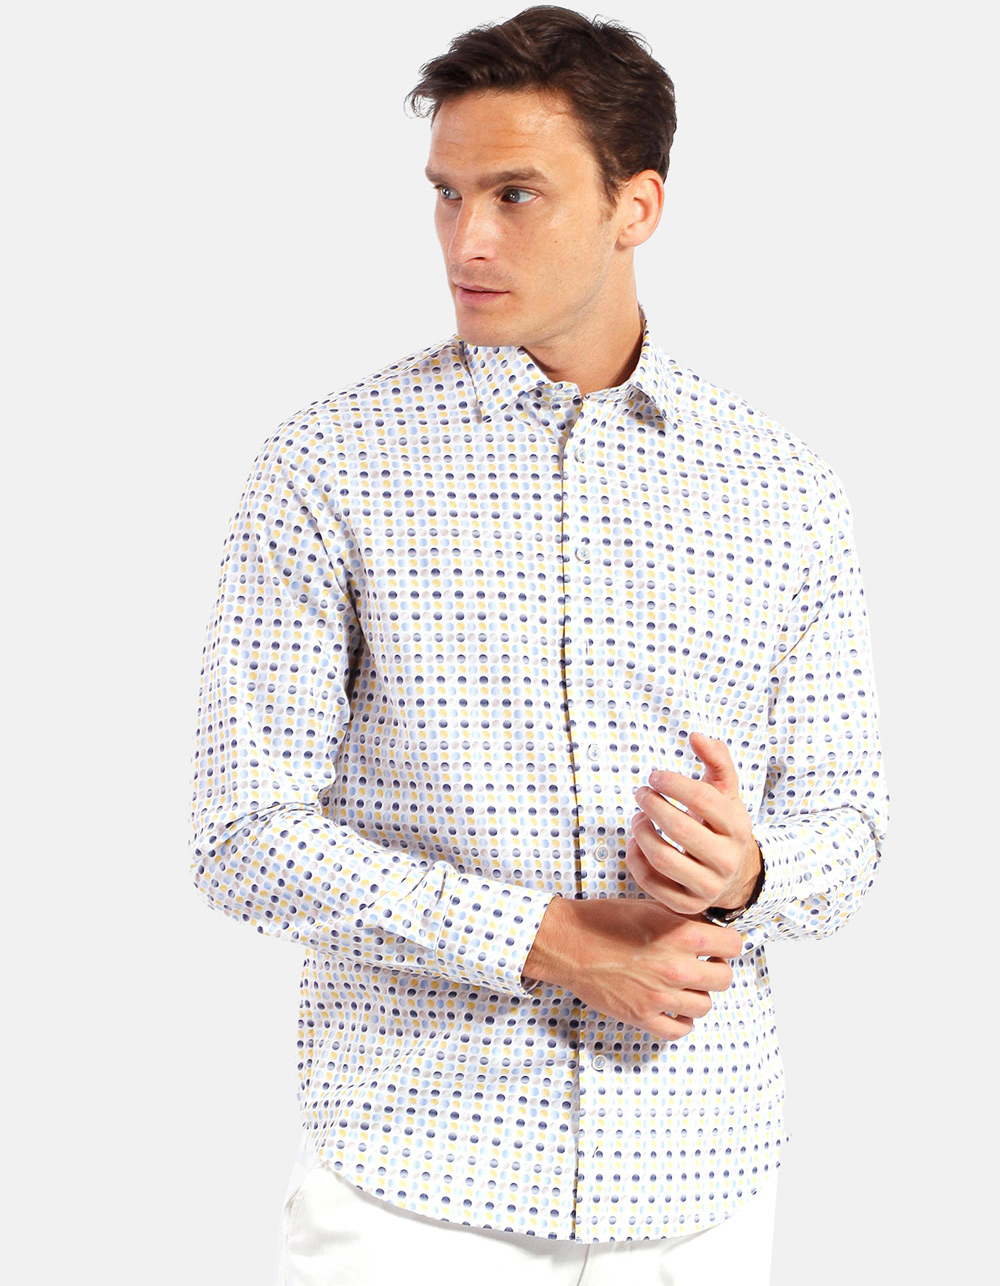 Printed shirt circles